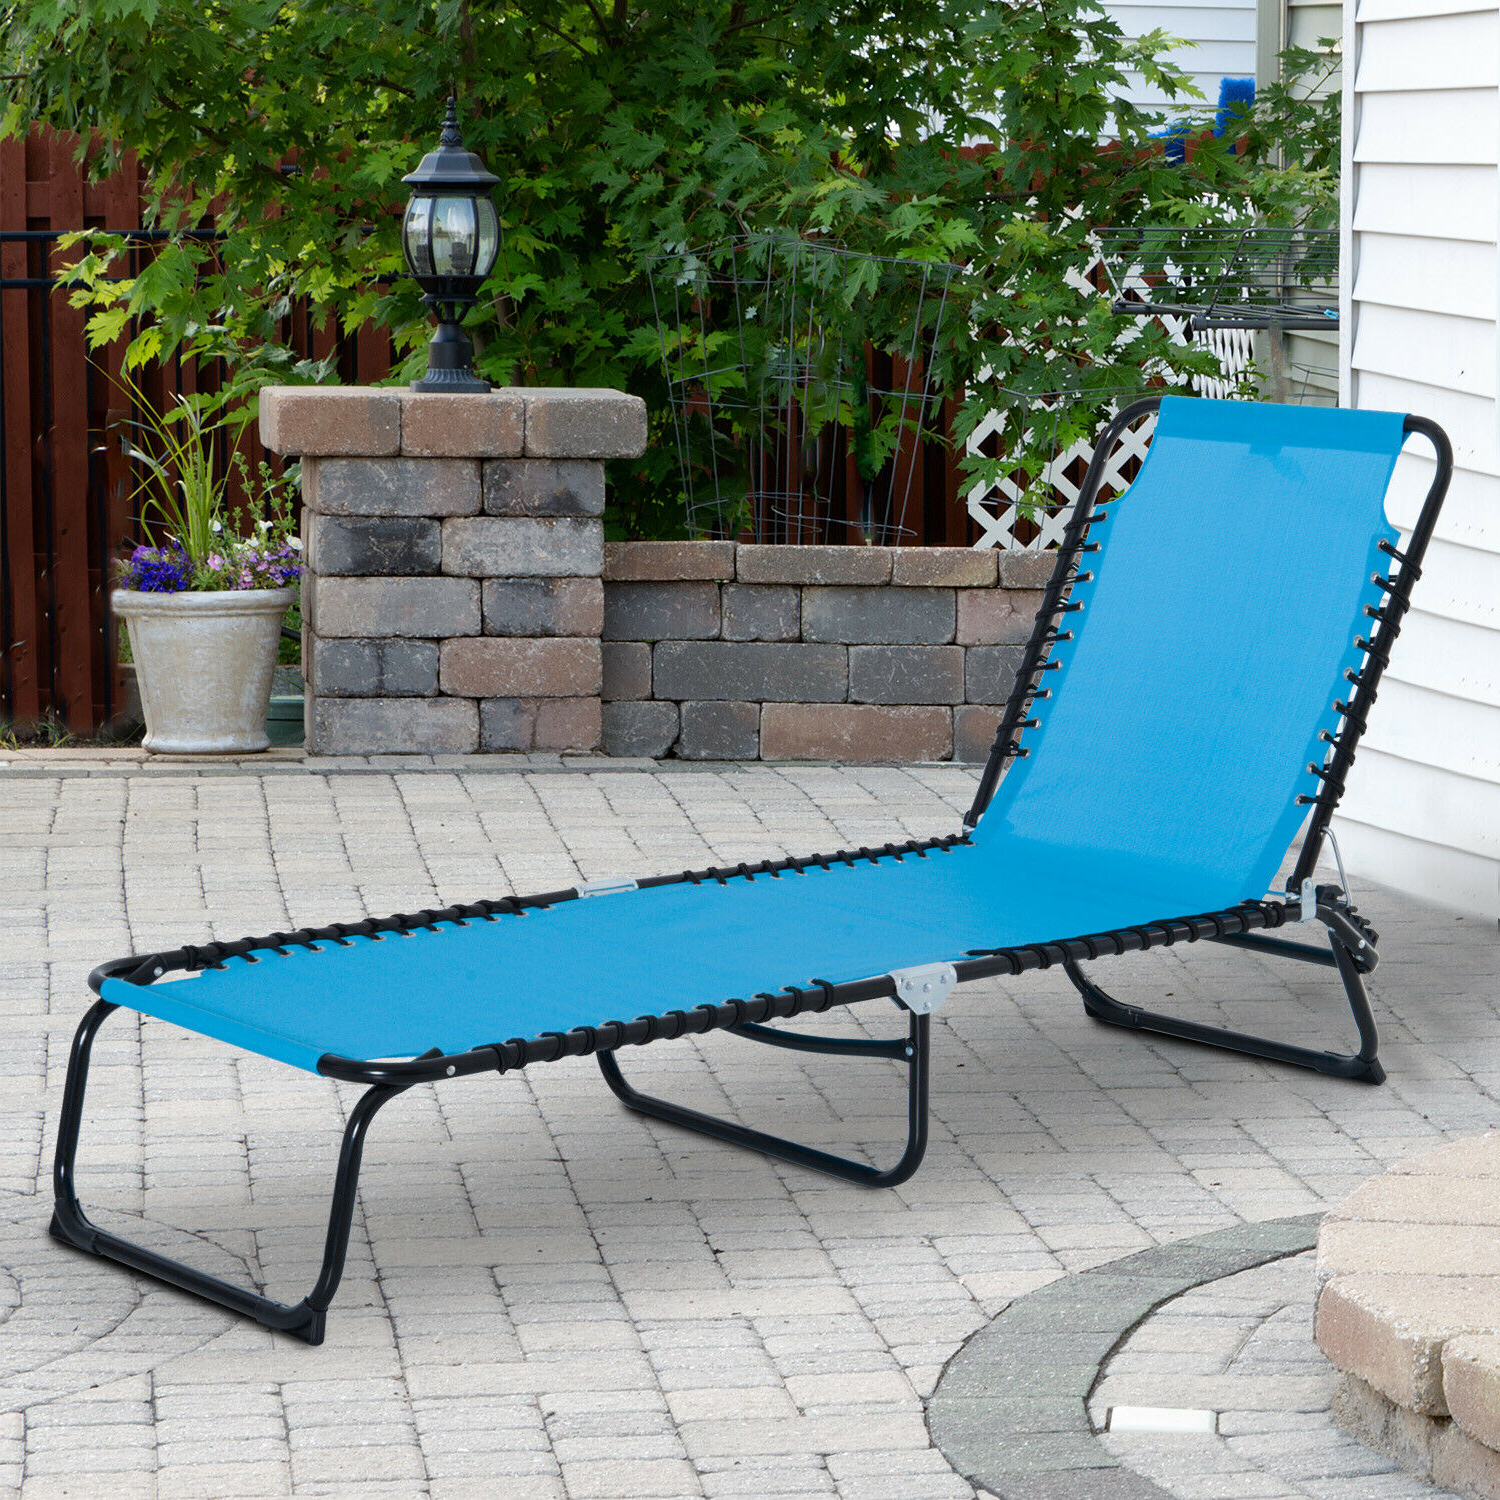 3 Position Portable Reclining Beach Chaise Lounge Adjustable Sleeping Light Blue Intended For Well Liked 3 Position Portable Folding Reclining Beach Chaise Lounges (View 5 of 25)